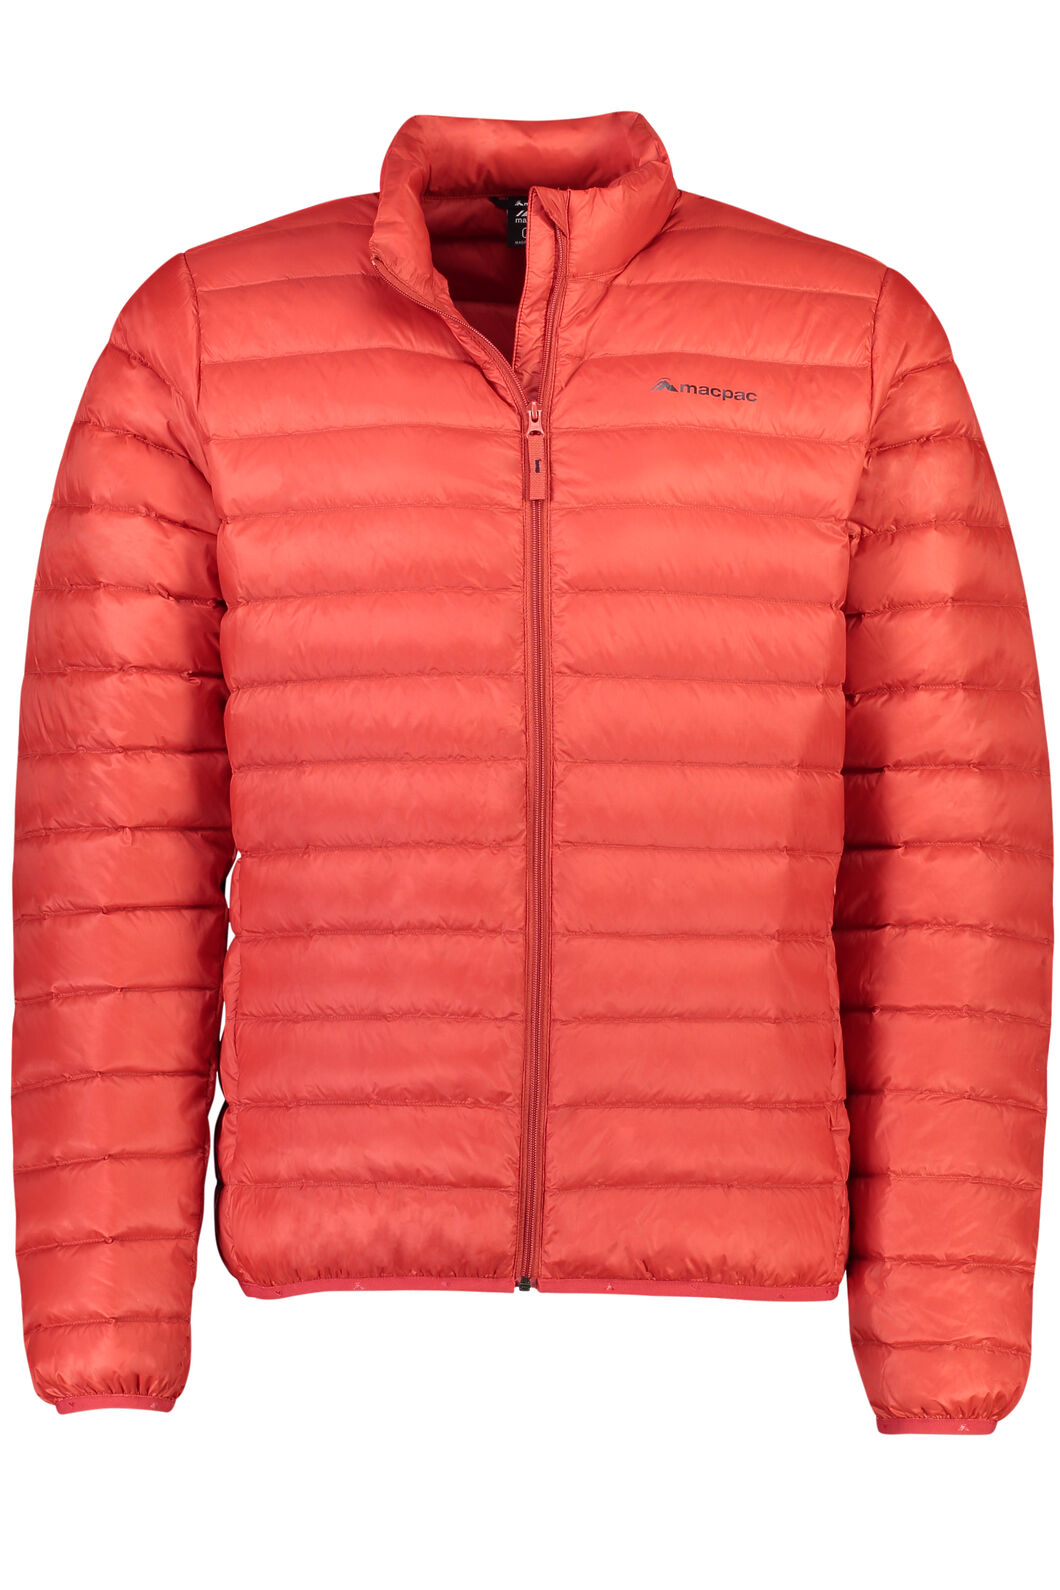 Macpac Uber Light Down Jacket - Men's, Pompeian, hi-res